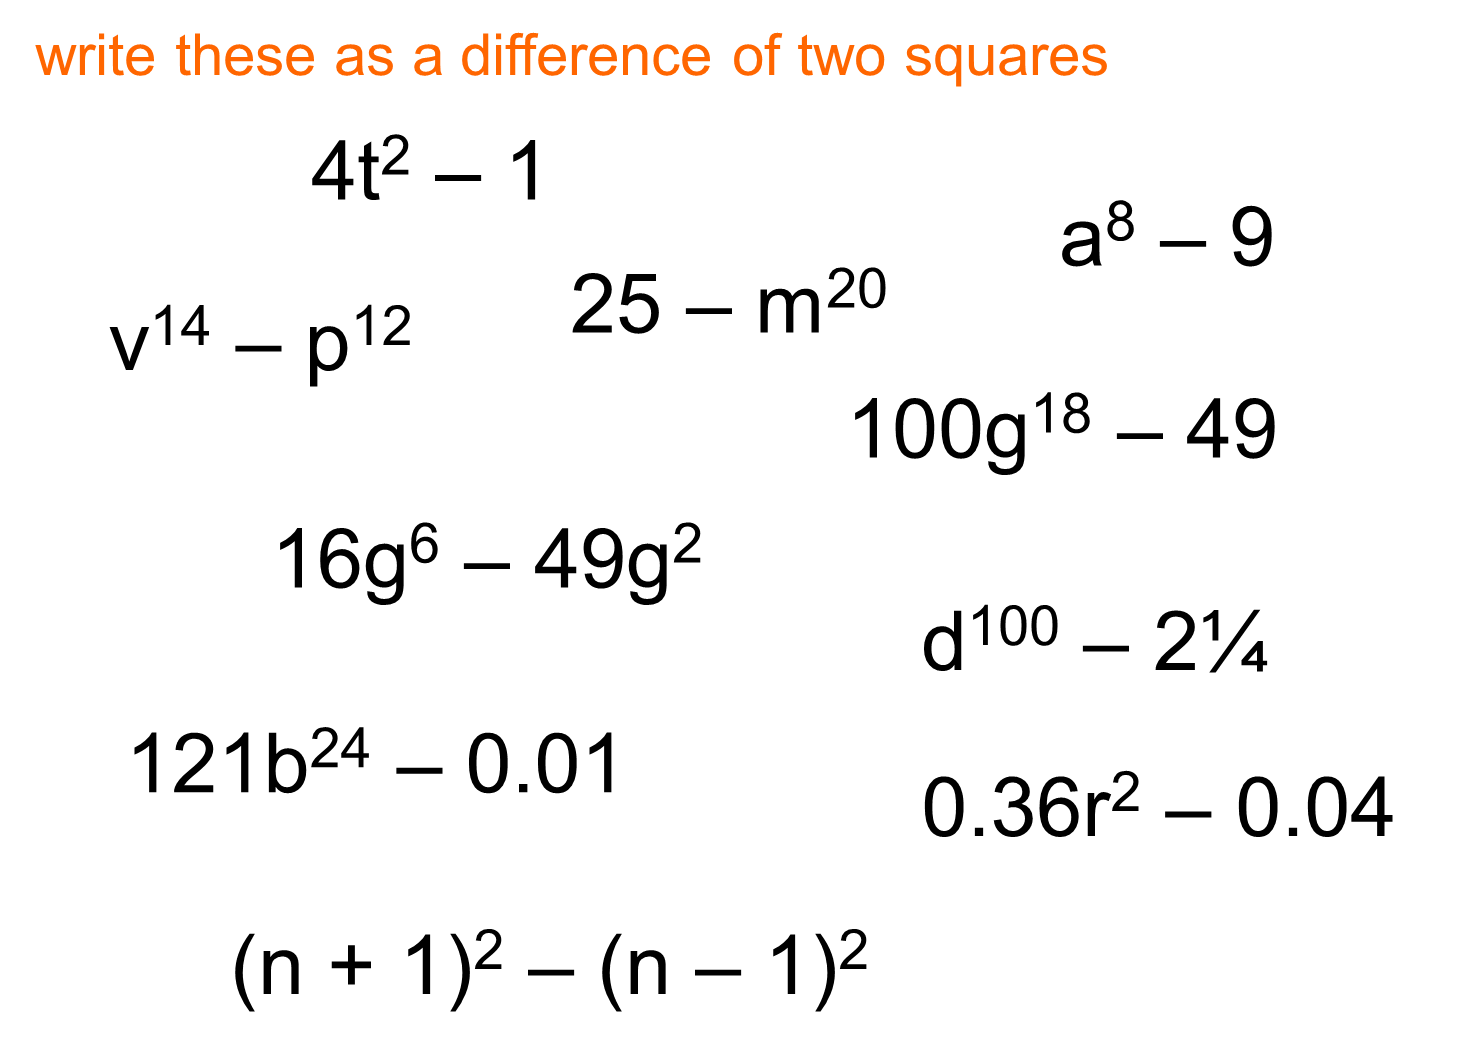 Free Worksheet Difference Of Two Squares Worksheet median don steward mathematics teaching difference of two squares ii